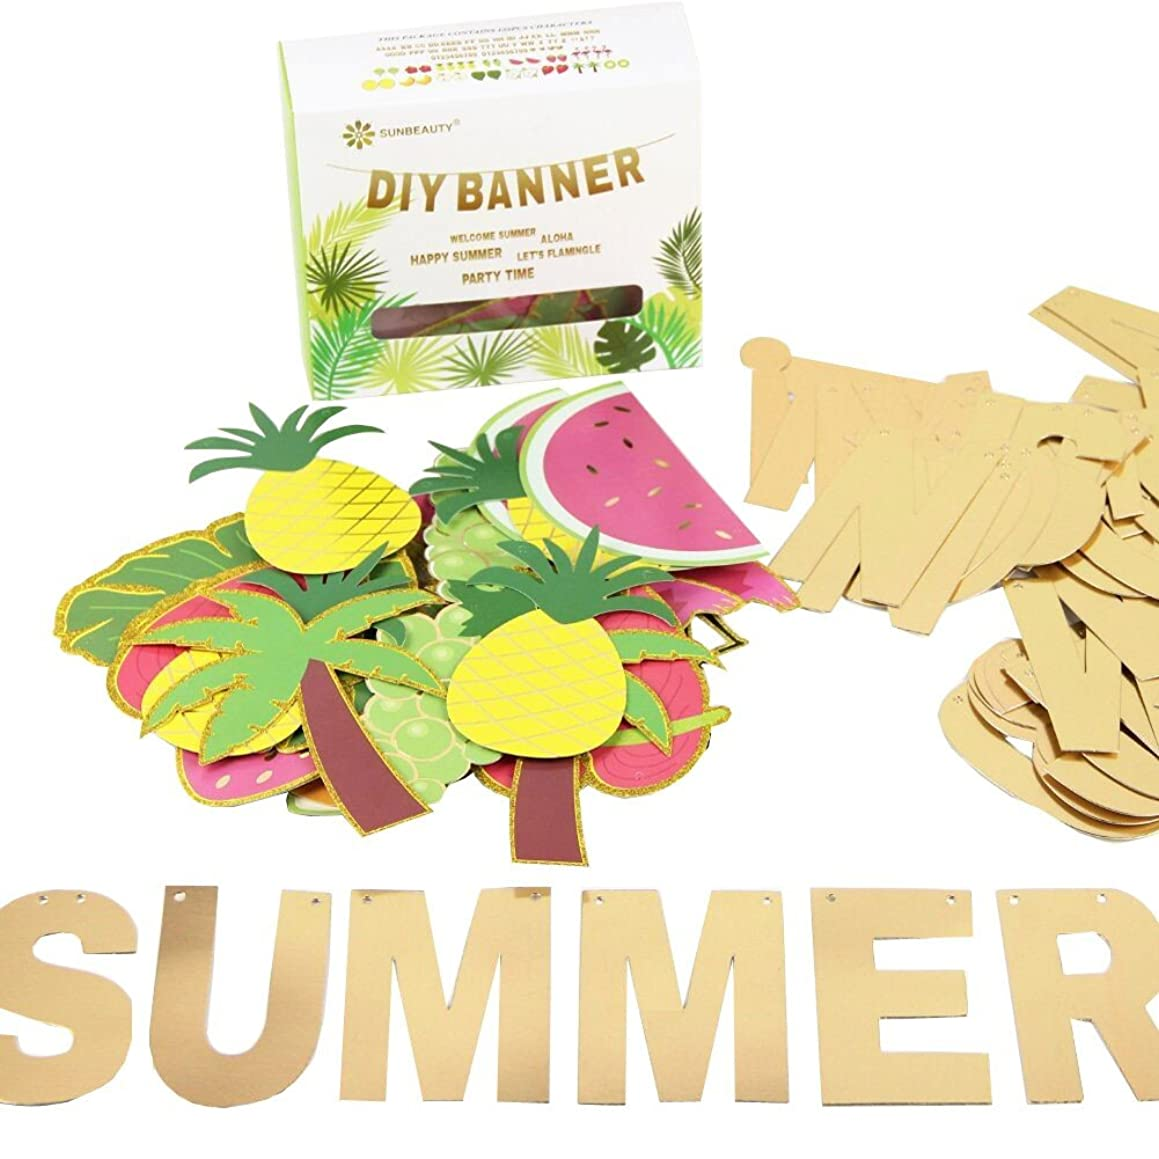 SUNBEAUTY Customizable Letters Summer Banner Fruit Party DIY Banner for Luau Tiki Party Tropical Hawaiian Festival Favors Photo Backdrop Window Decor (Summer Banner)